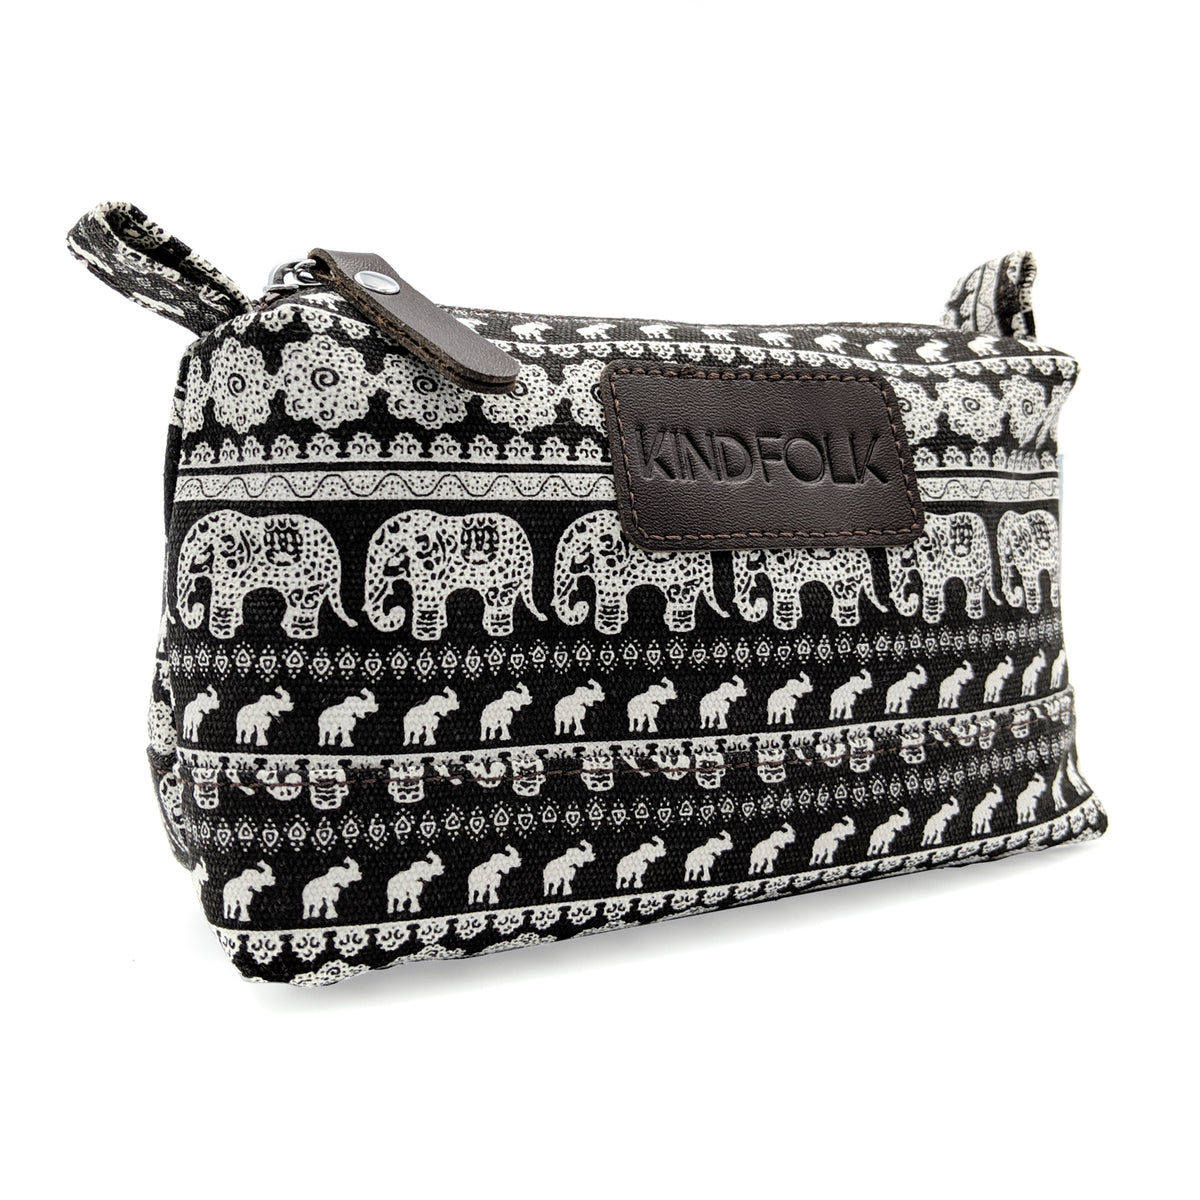 Cosmetic Travel Bag - Kindfolk Athletics